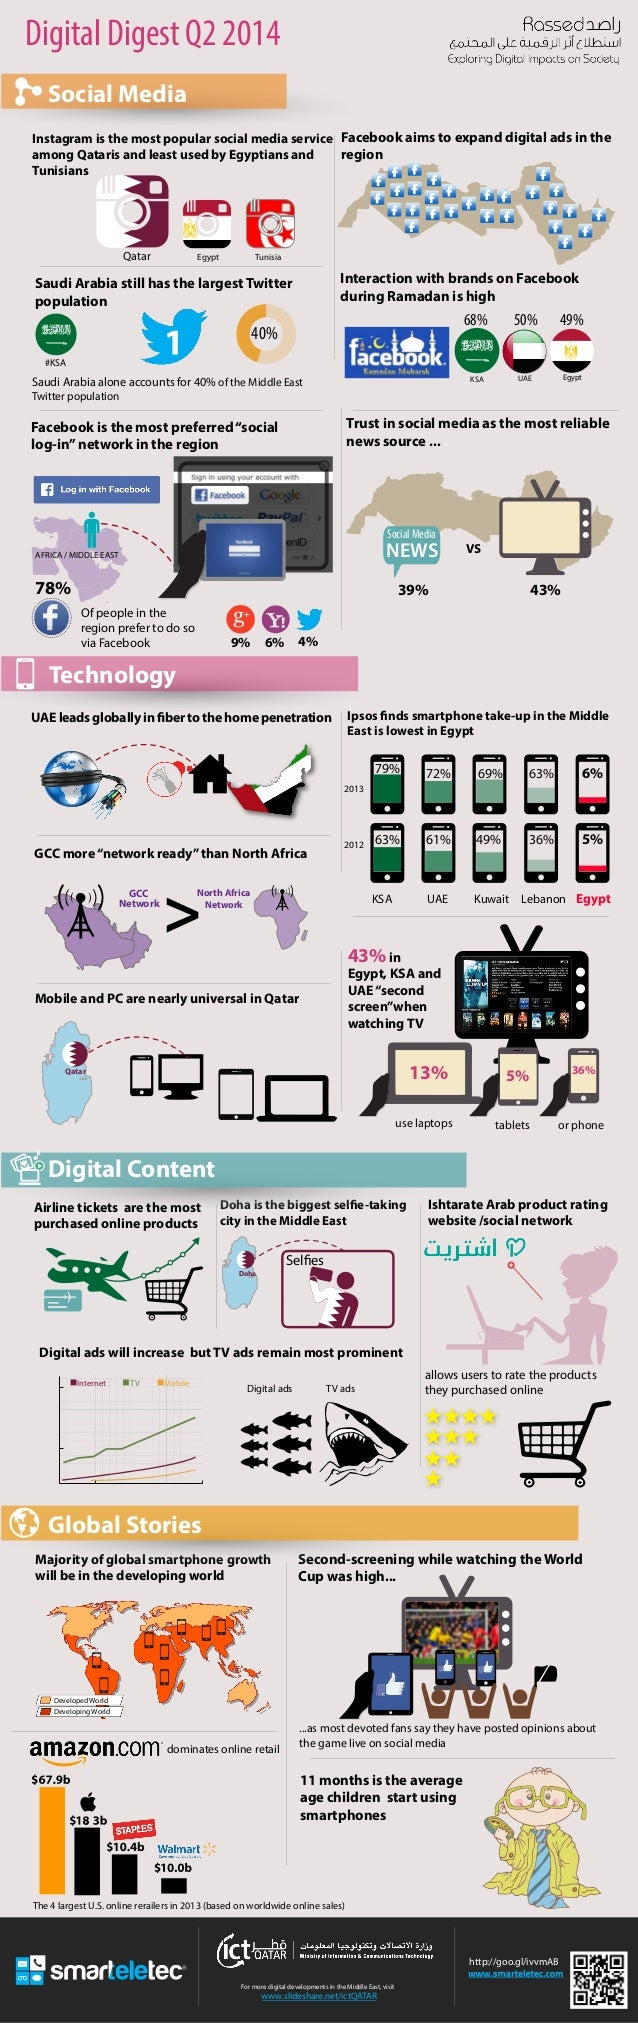 Infographic: Digital Digest Q2 Summary